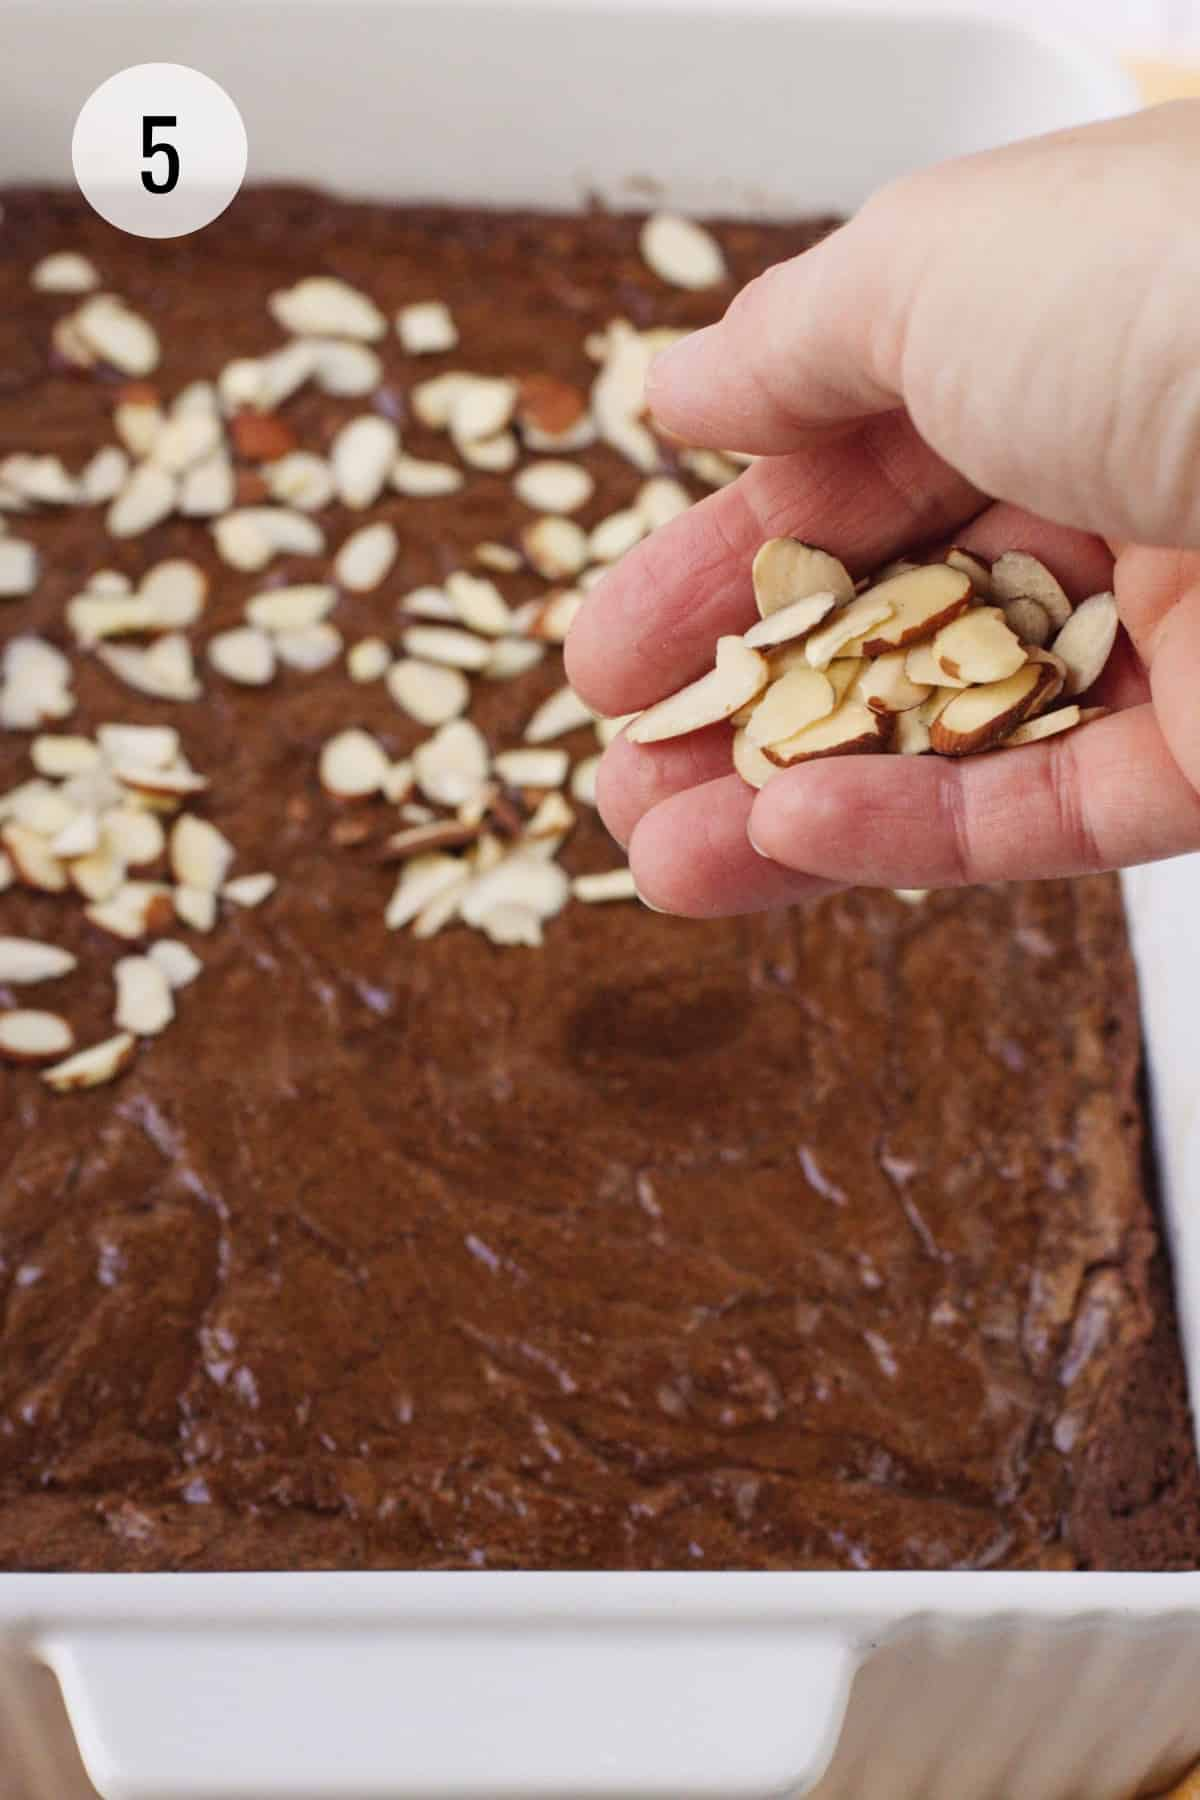 Hand sprinkling sliced almonds on partially baked pan of Mexican brownies.